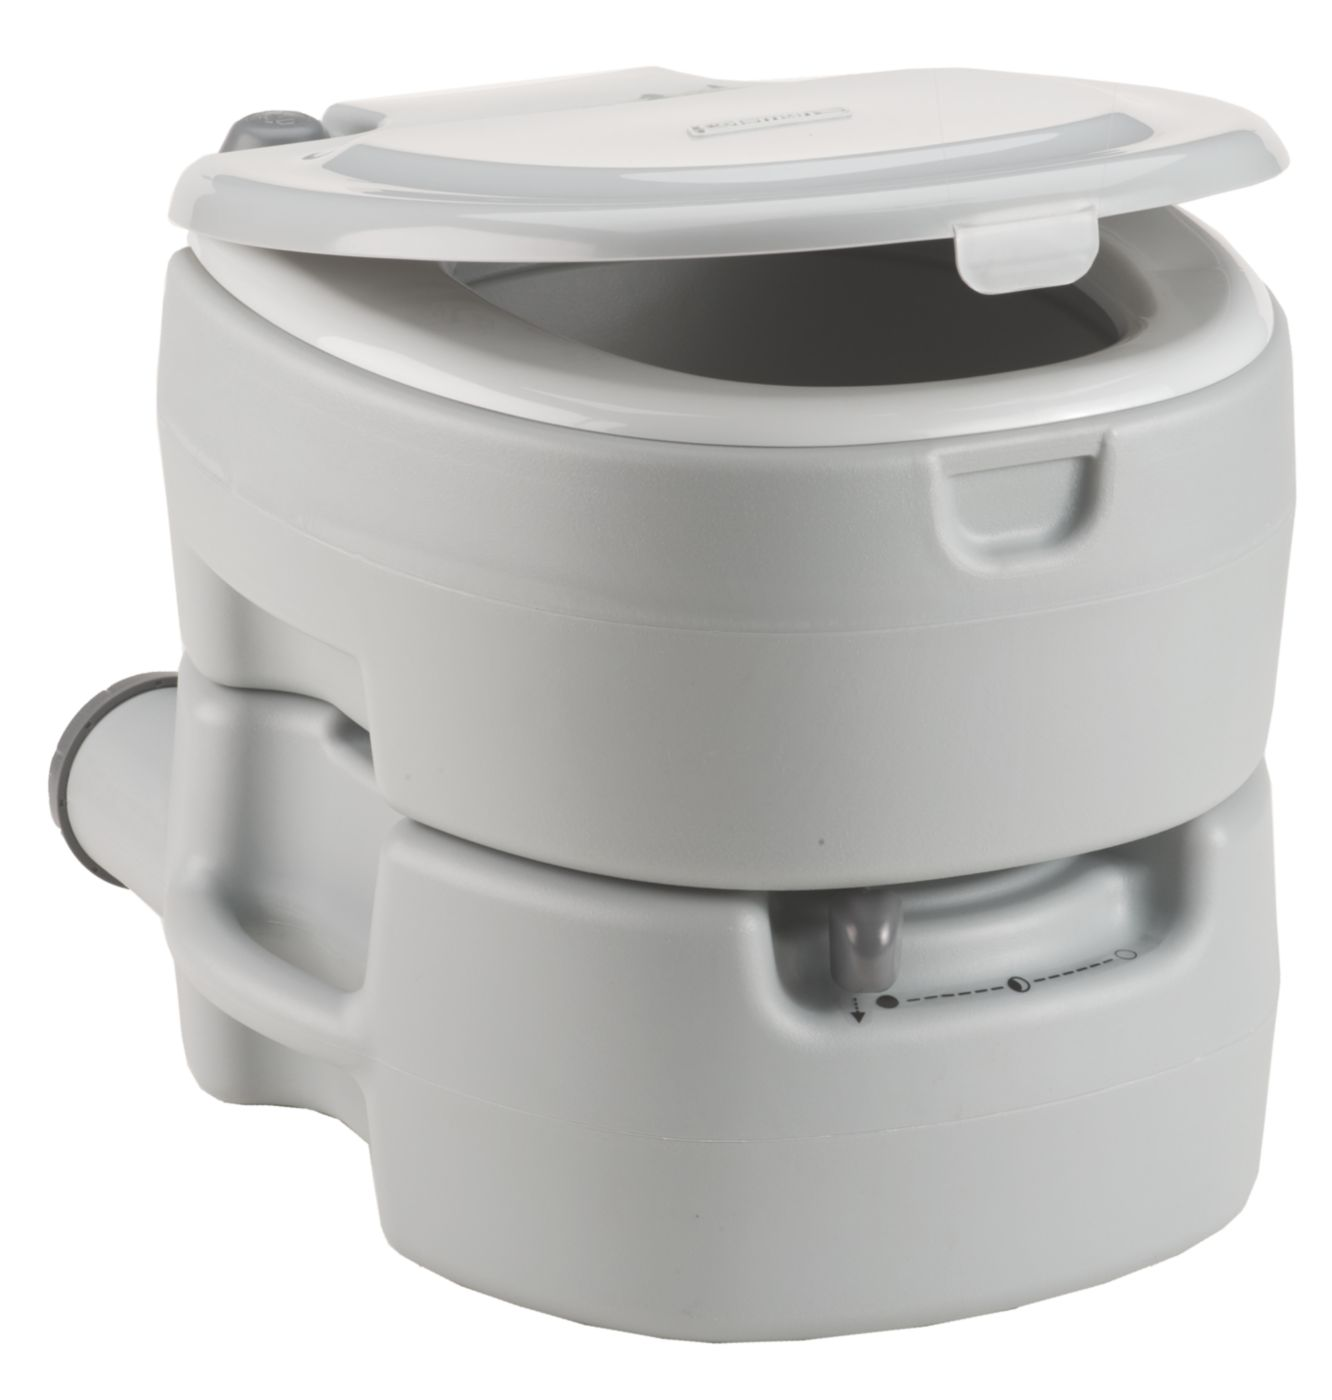 Camping Toilet Large Flush Toilet Coleman